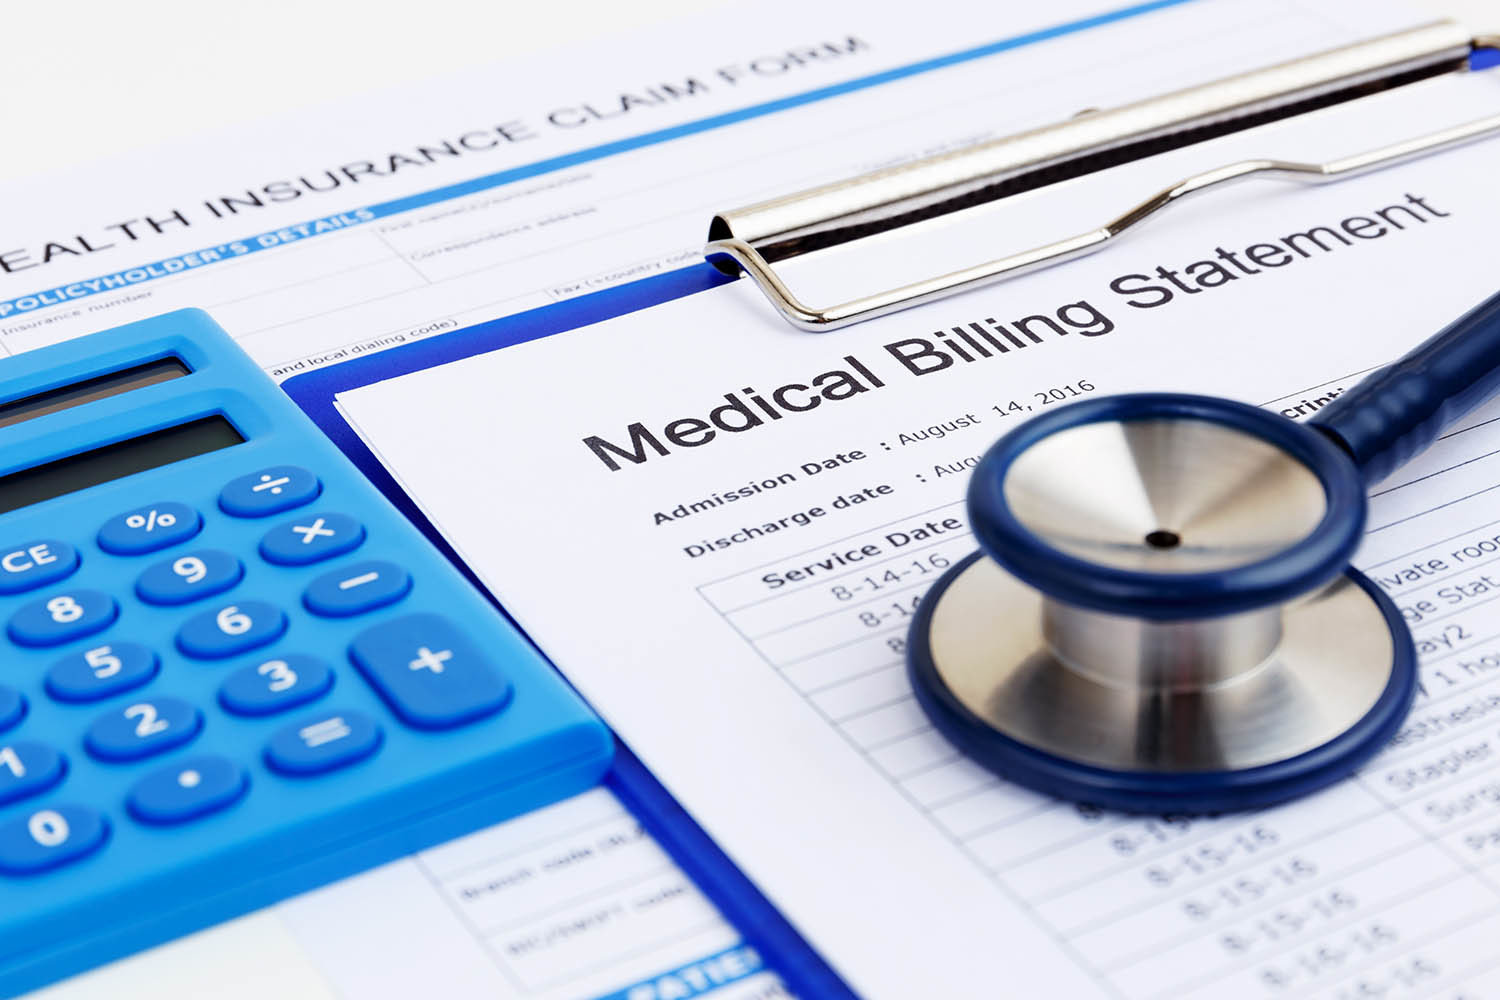 Healthcare Applications - Medical Billing|Australia CipherLab world leader in AIDC solutions